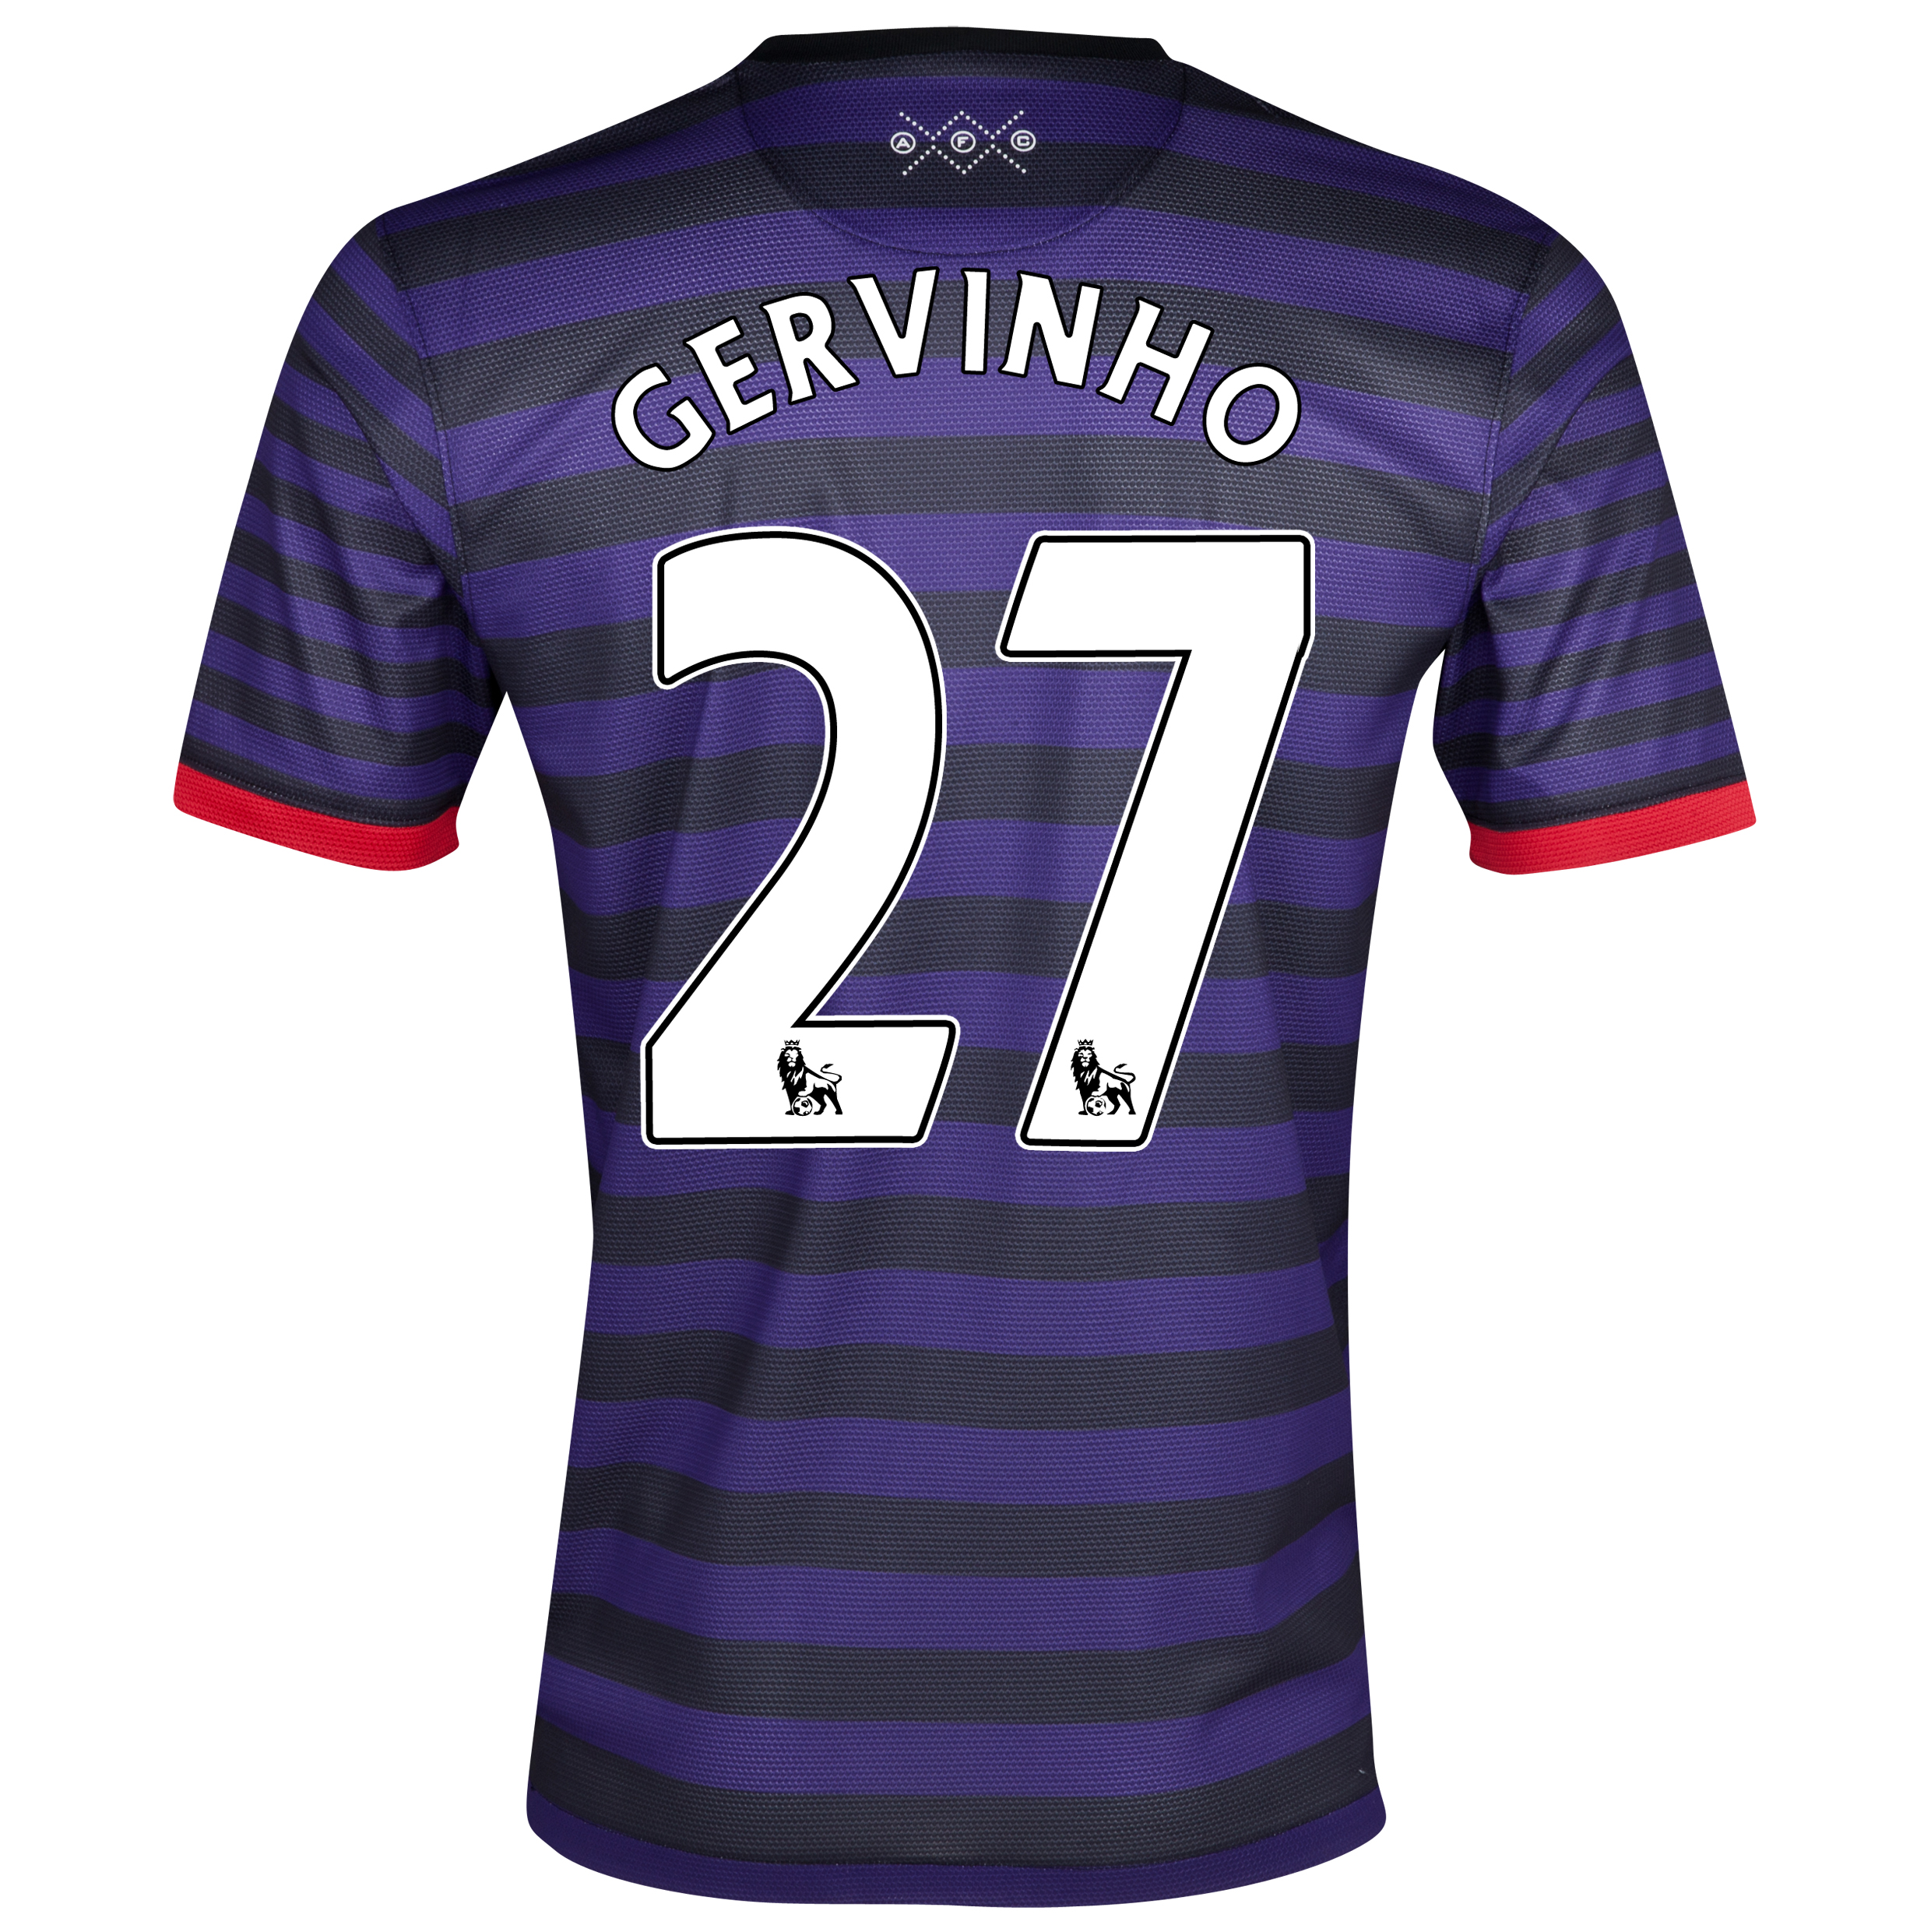 Arsenal Away Shirt 2012/13 with Gervinho 27 printing